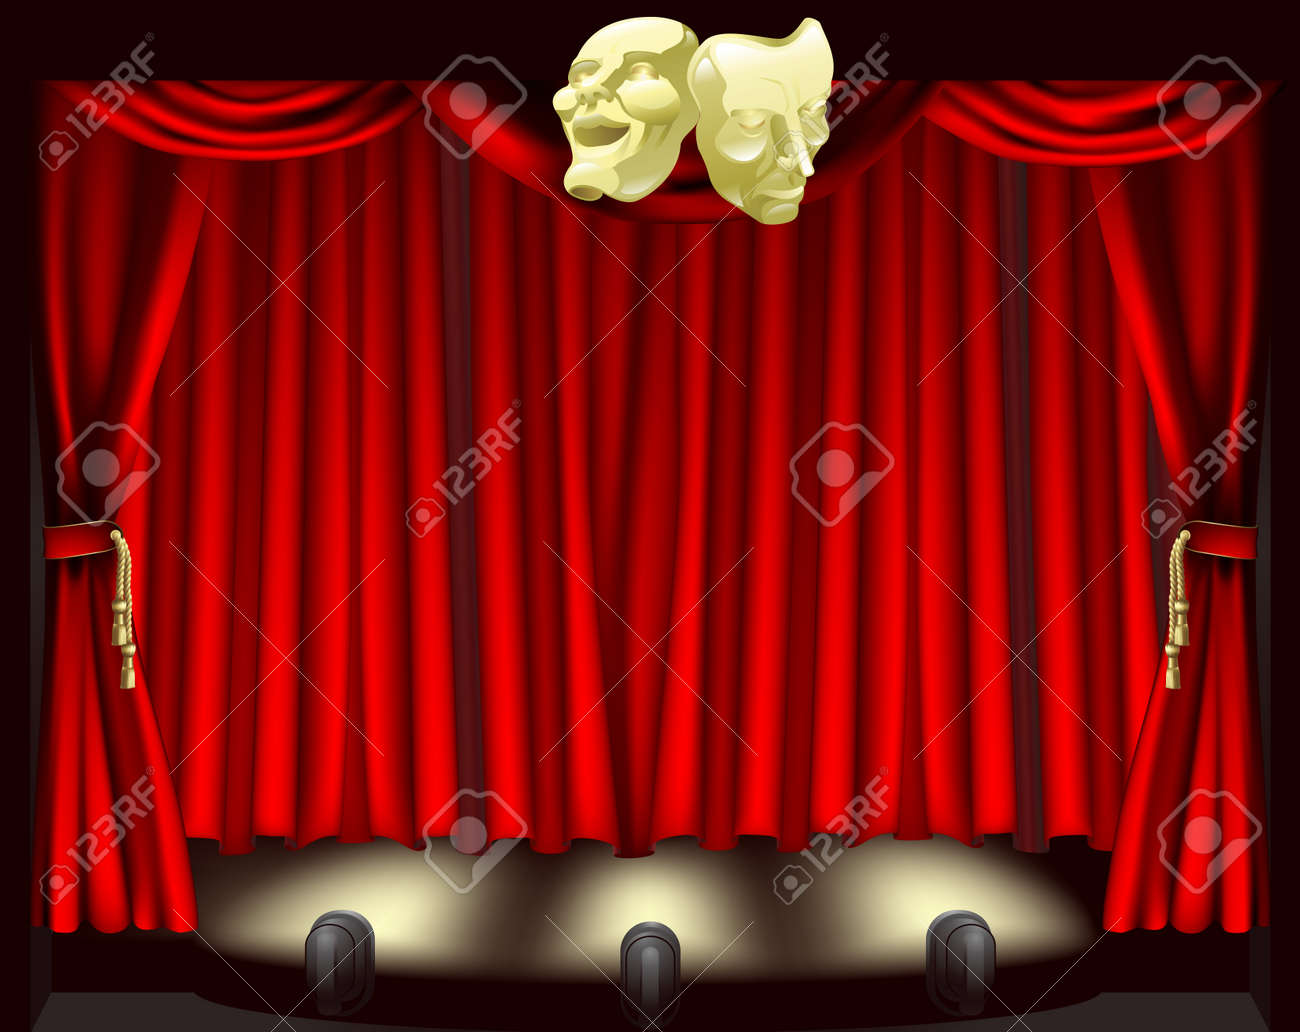 Theatre stage with curtains, footlights, and comedy and tragedy masks Stock Vector - 10908700